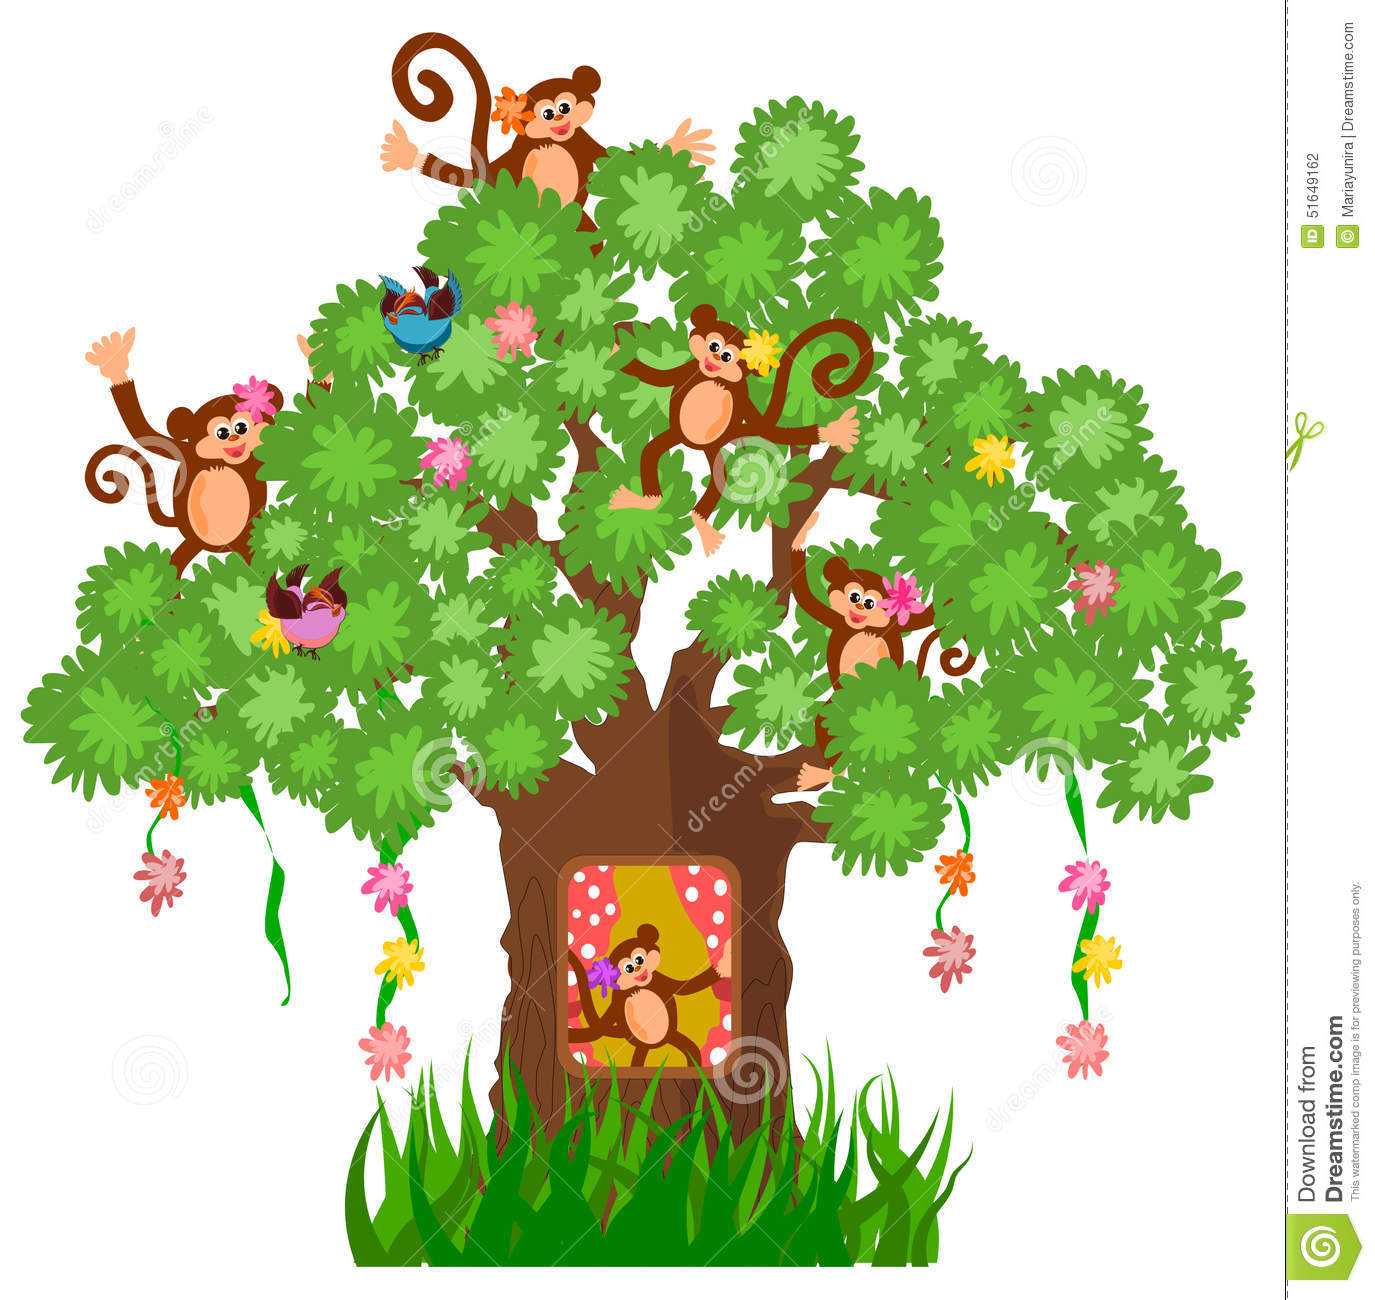 Tree House And Monkey Stock Vector - Image: 51649162